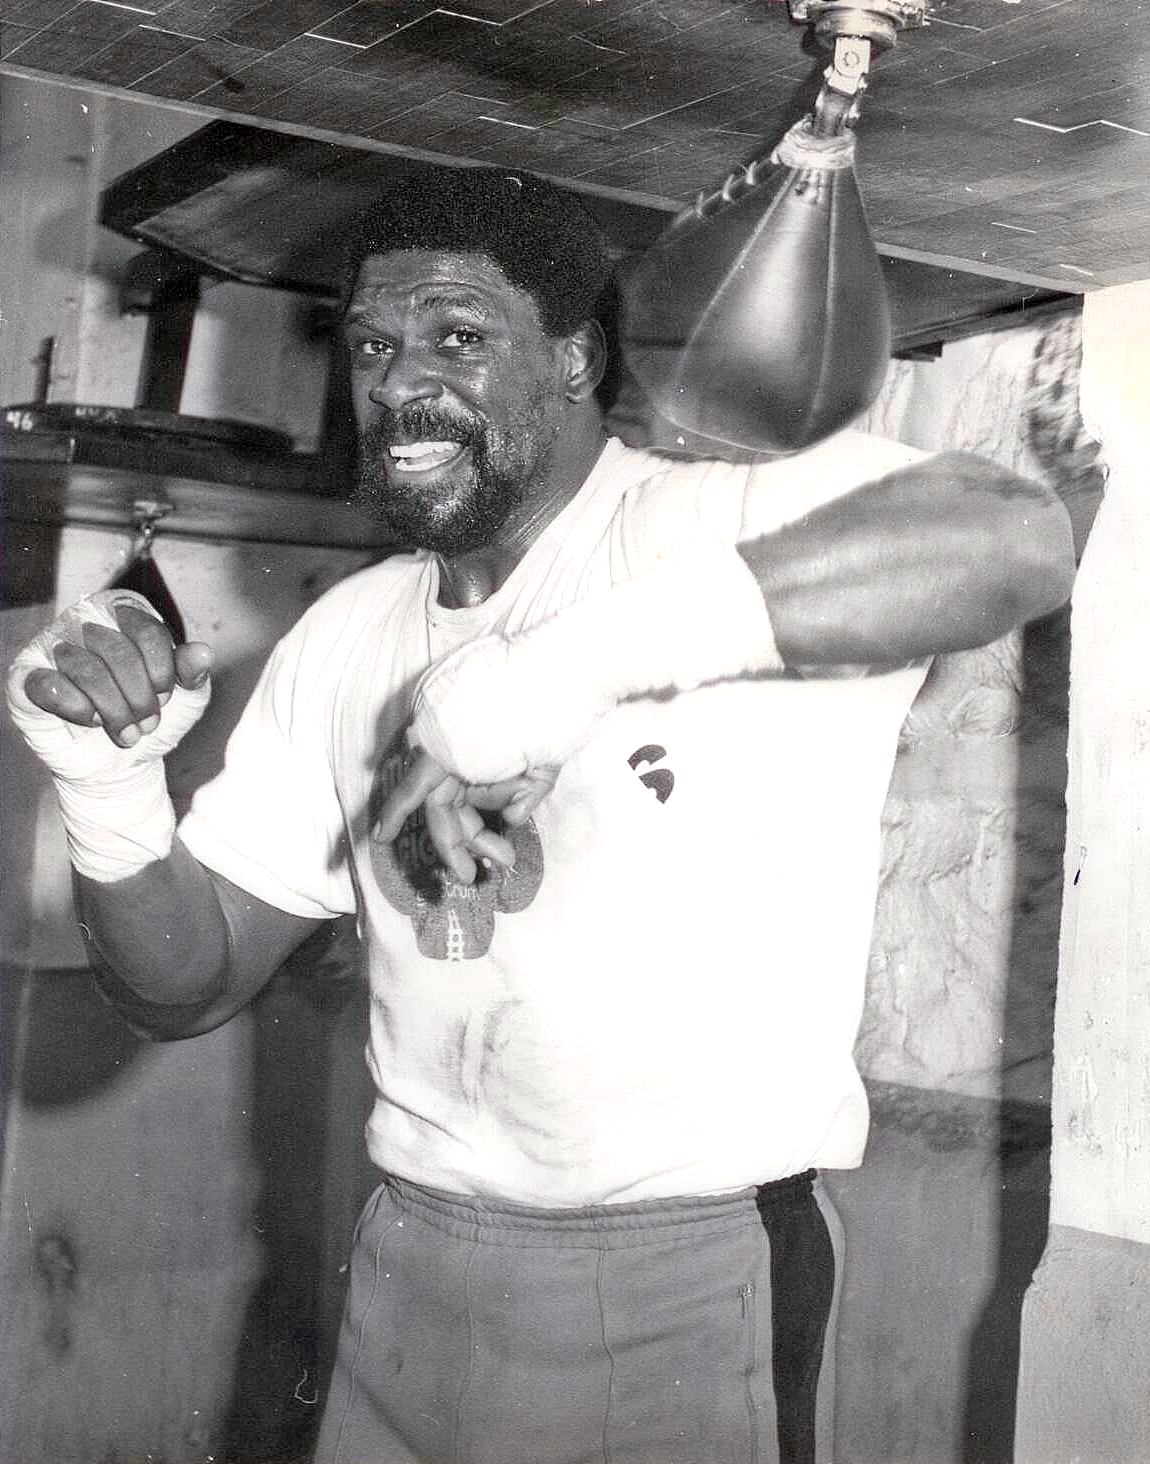 http://upload.wikimedia.org/wikipedia/commons/d/dc/Ron_Lyle_boxer2.png